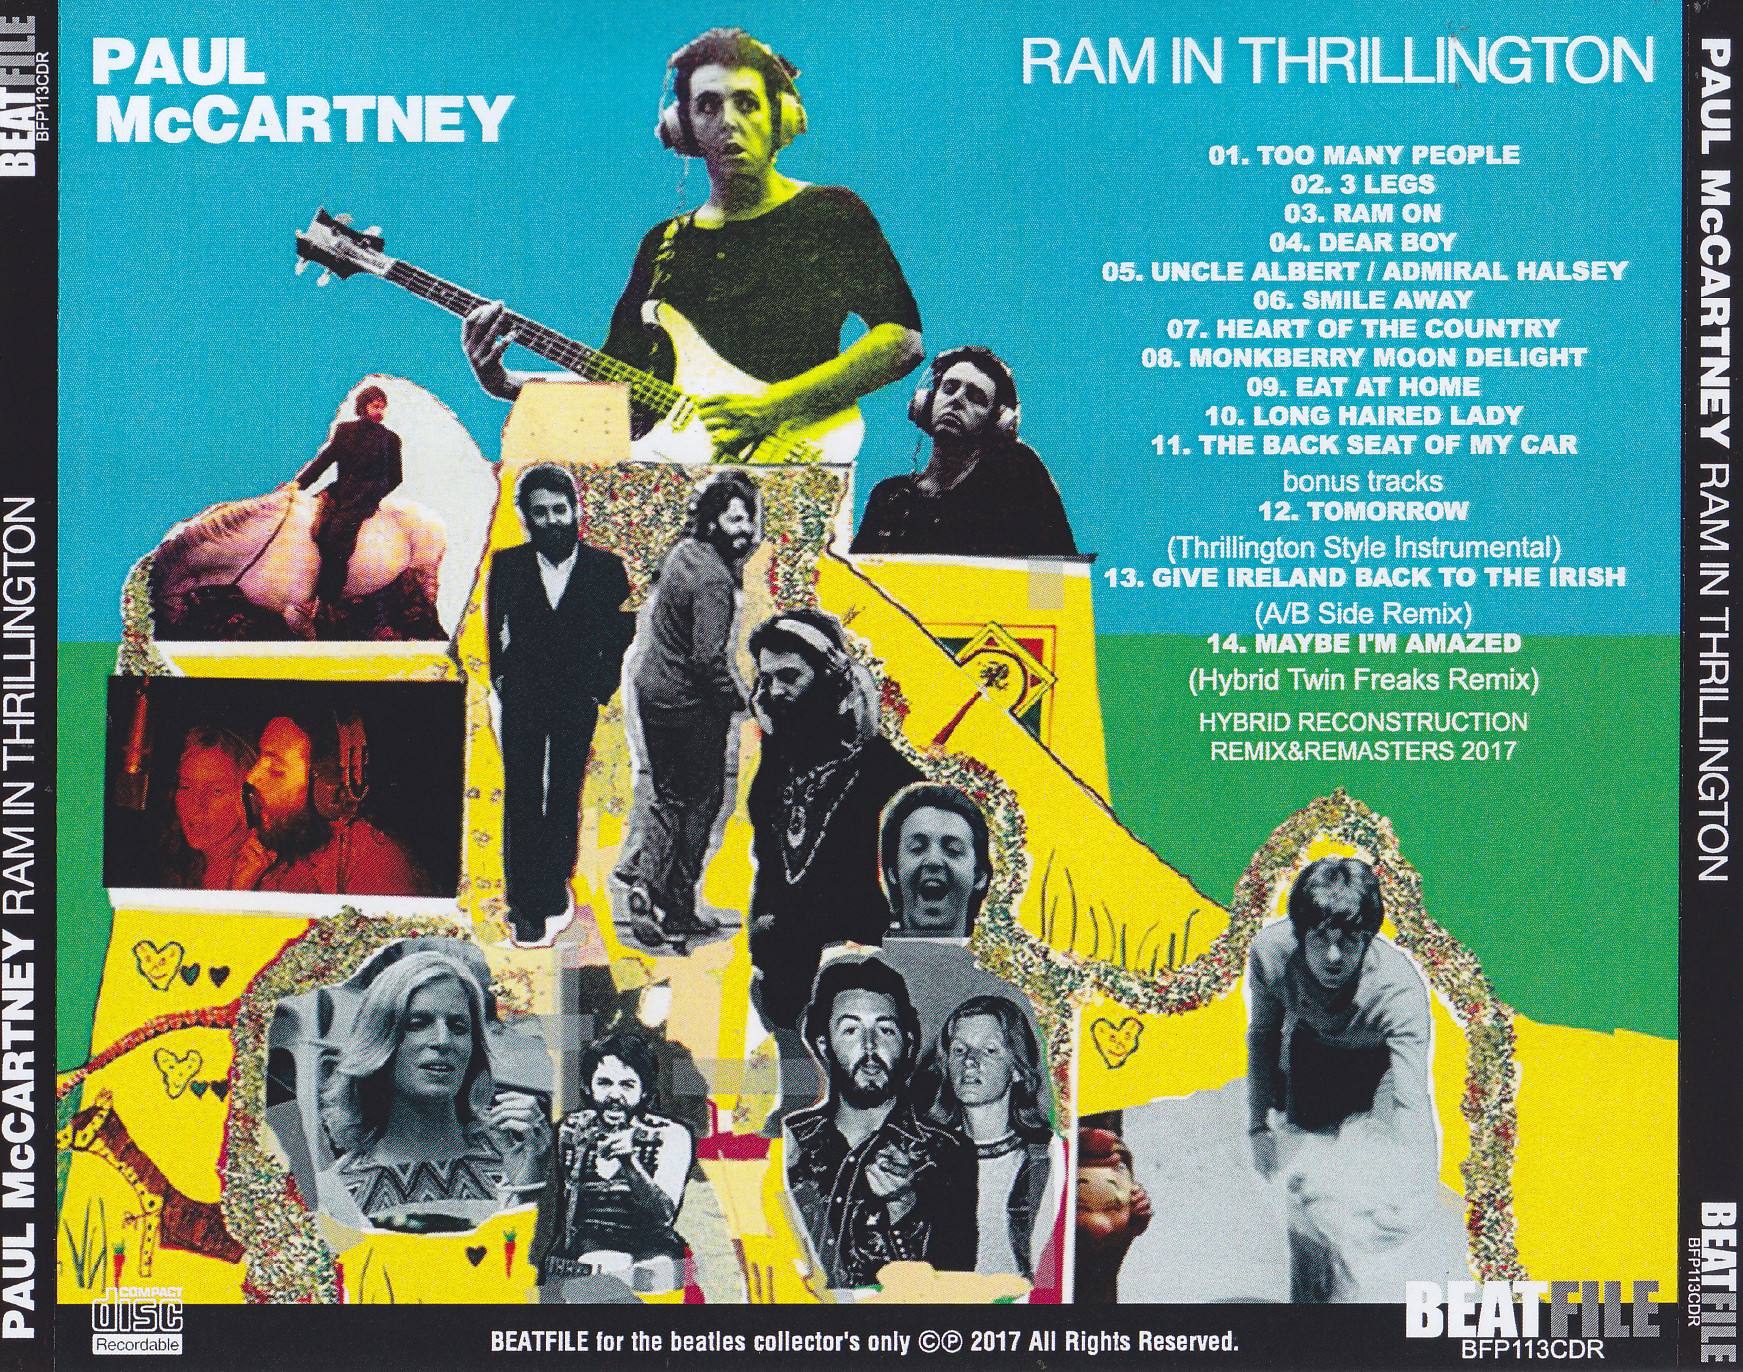 Paul McCartney S Original Version Of Board Lamb Whose Popularity And Evaluation Has Further Increased In Recent Years